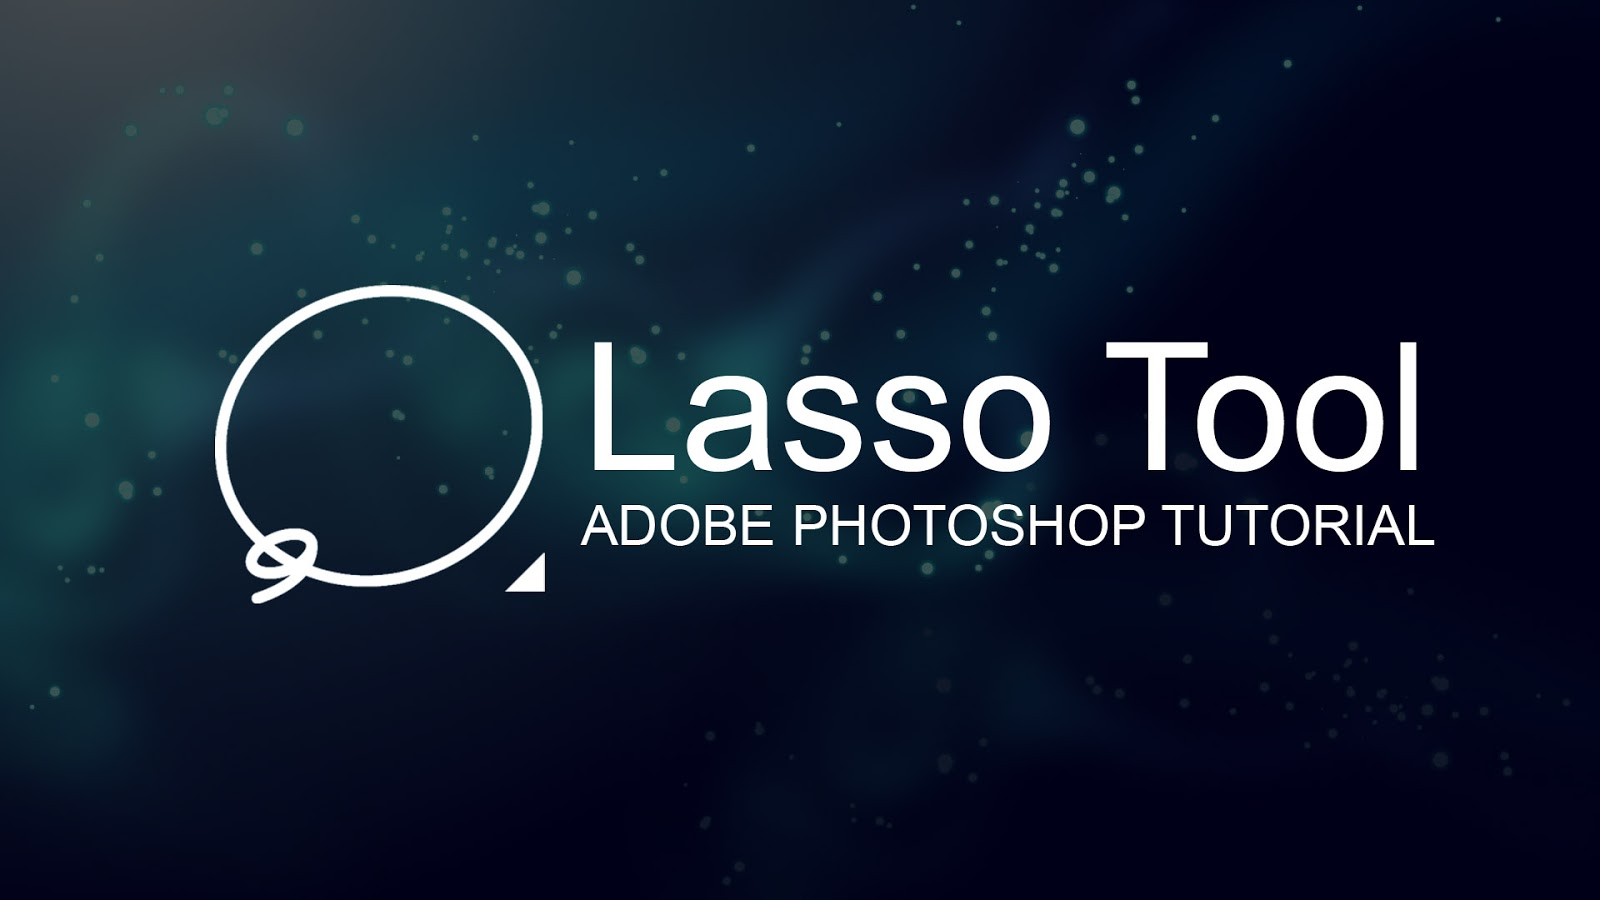 How to use lasso tool in photoshop chapter 1 part 2 hindi how to use lasso tool in photoshop chapter 1 part 2 hindi baditri Image collections